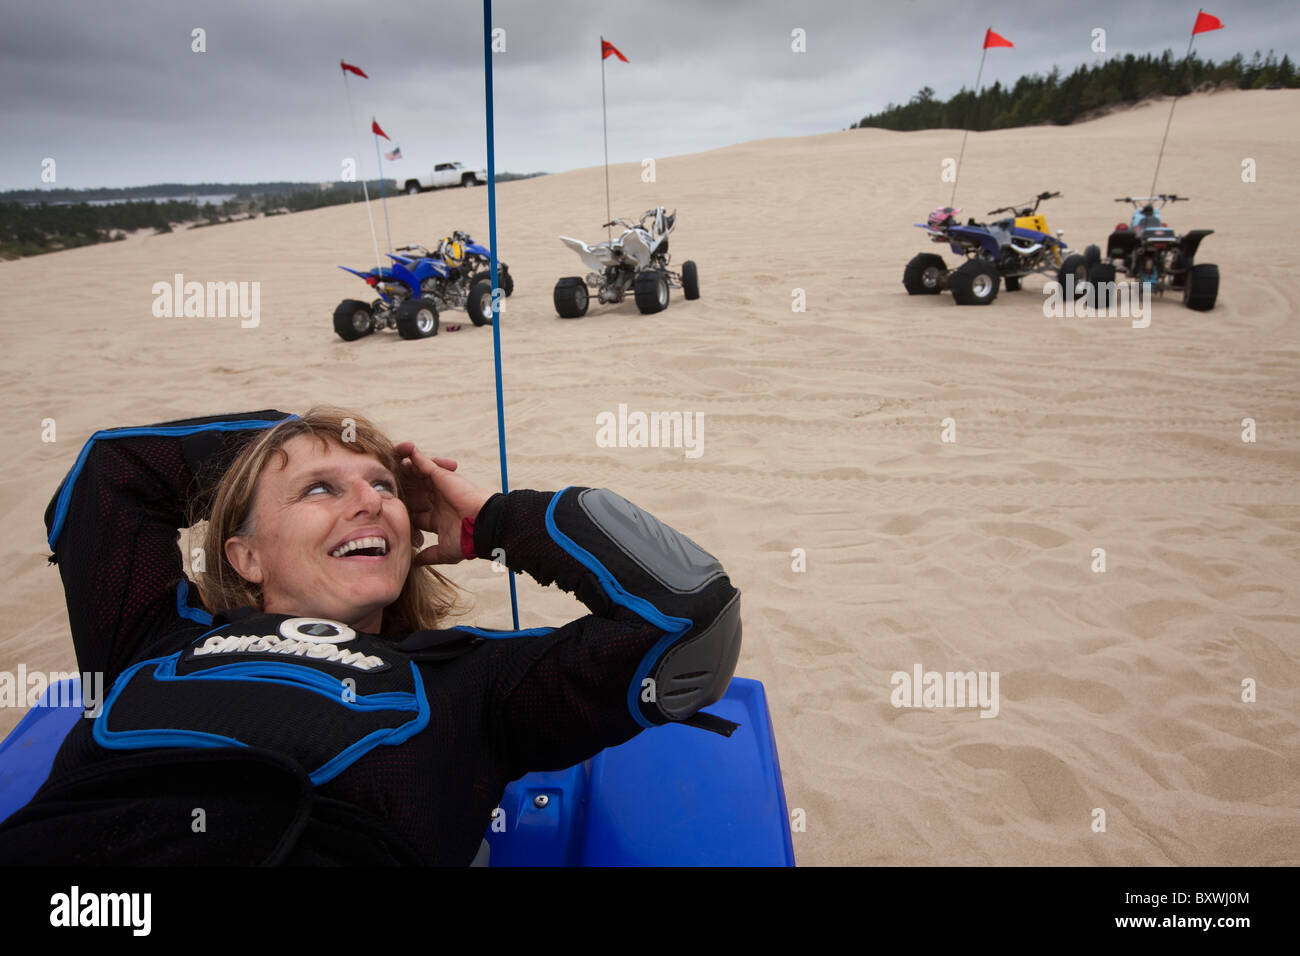 USA, Oregon, North Bend, Becky Selba rests while riding her ATV on sand dunes at Oregon Dunes National Recreation - Stock Image